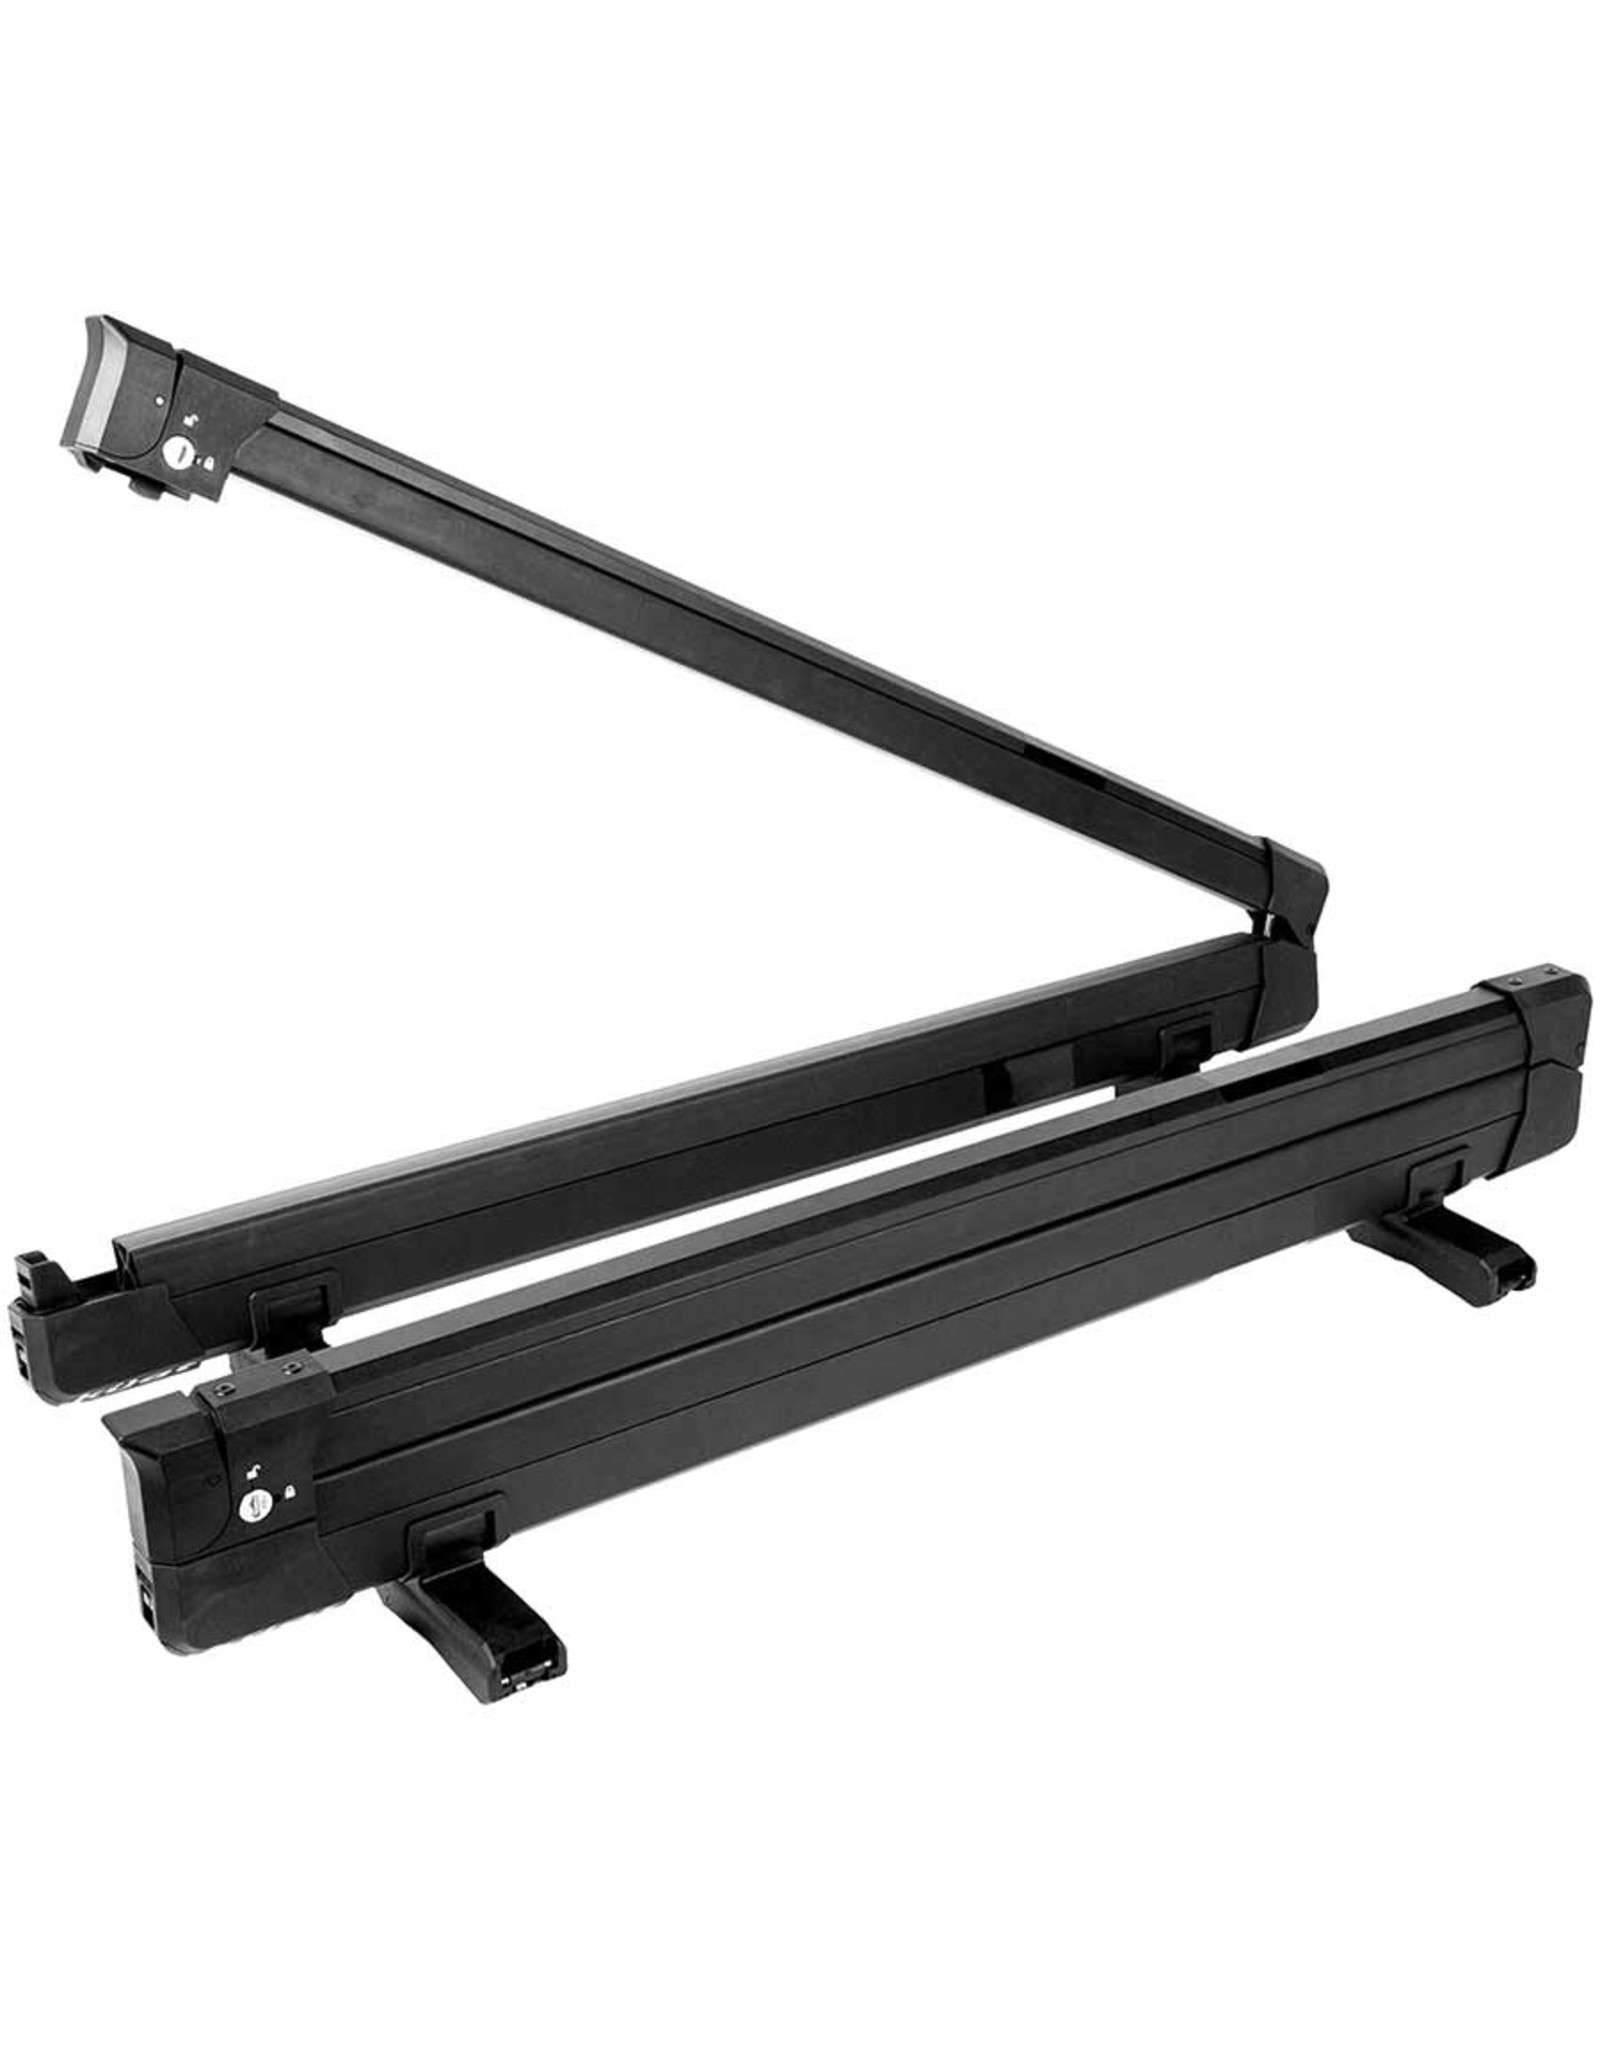 Kuat Kuat, Switch 6, Ski rack, 6 skis, Black